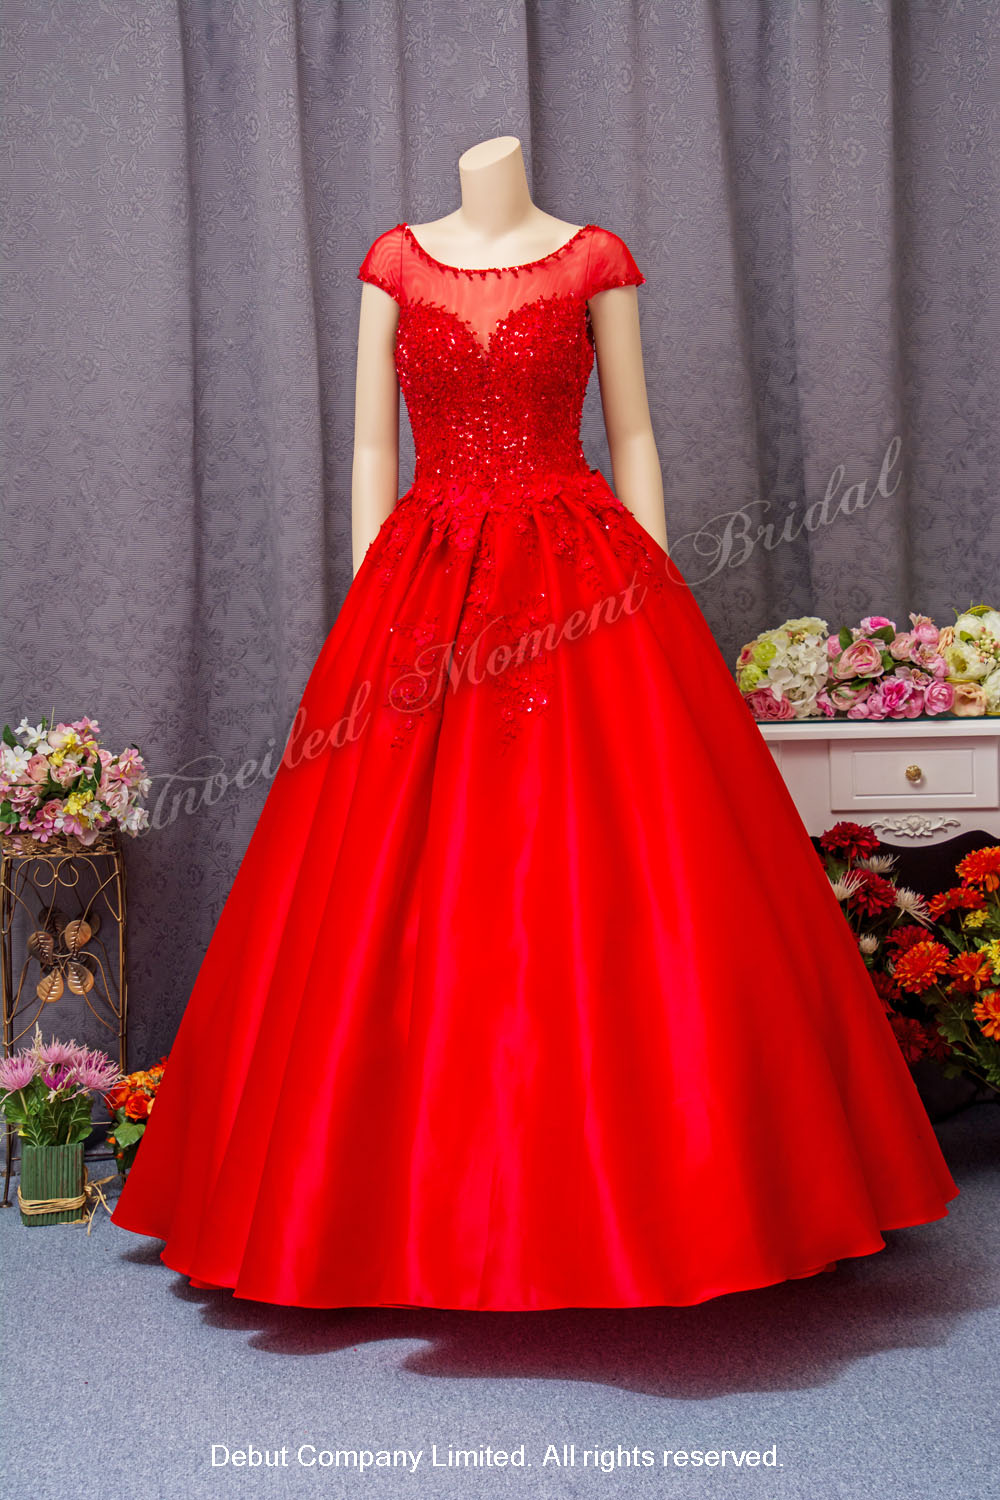 Sweet-heart neckline with see-through, embellished with lace appliques, floor-length ball evening gown. Colour: Red. 心型胸, 透視蕾絲圓領, 蕾絲閃片釘珠, 公主傘裙齊地款紅色晩裝裙